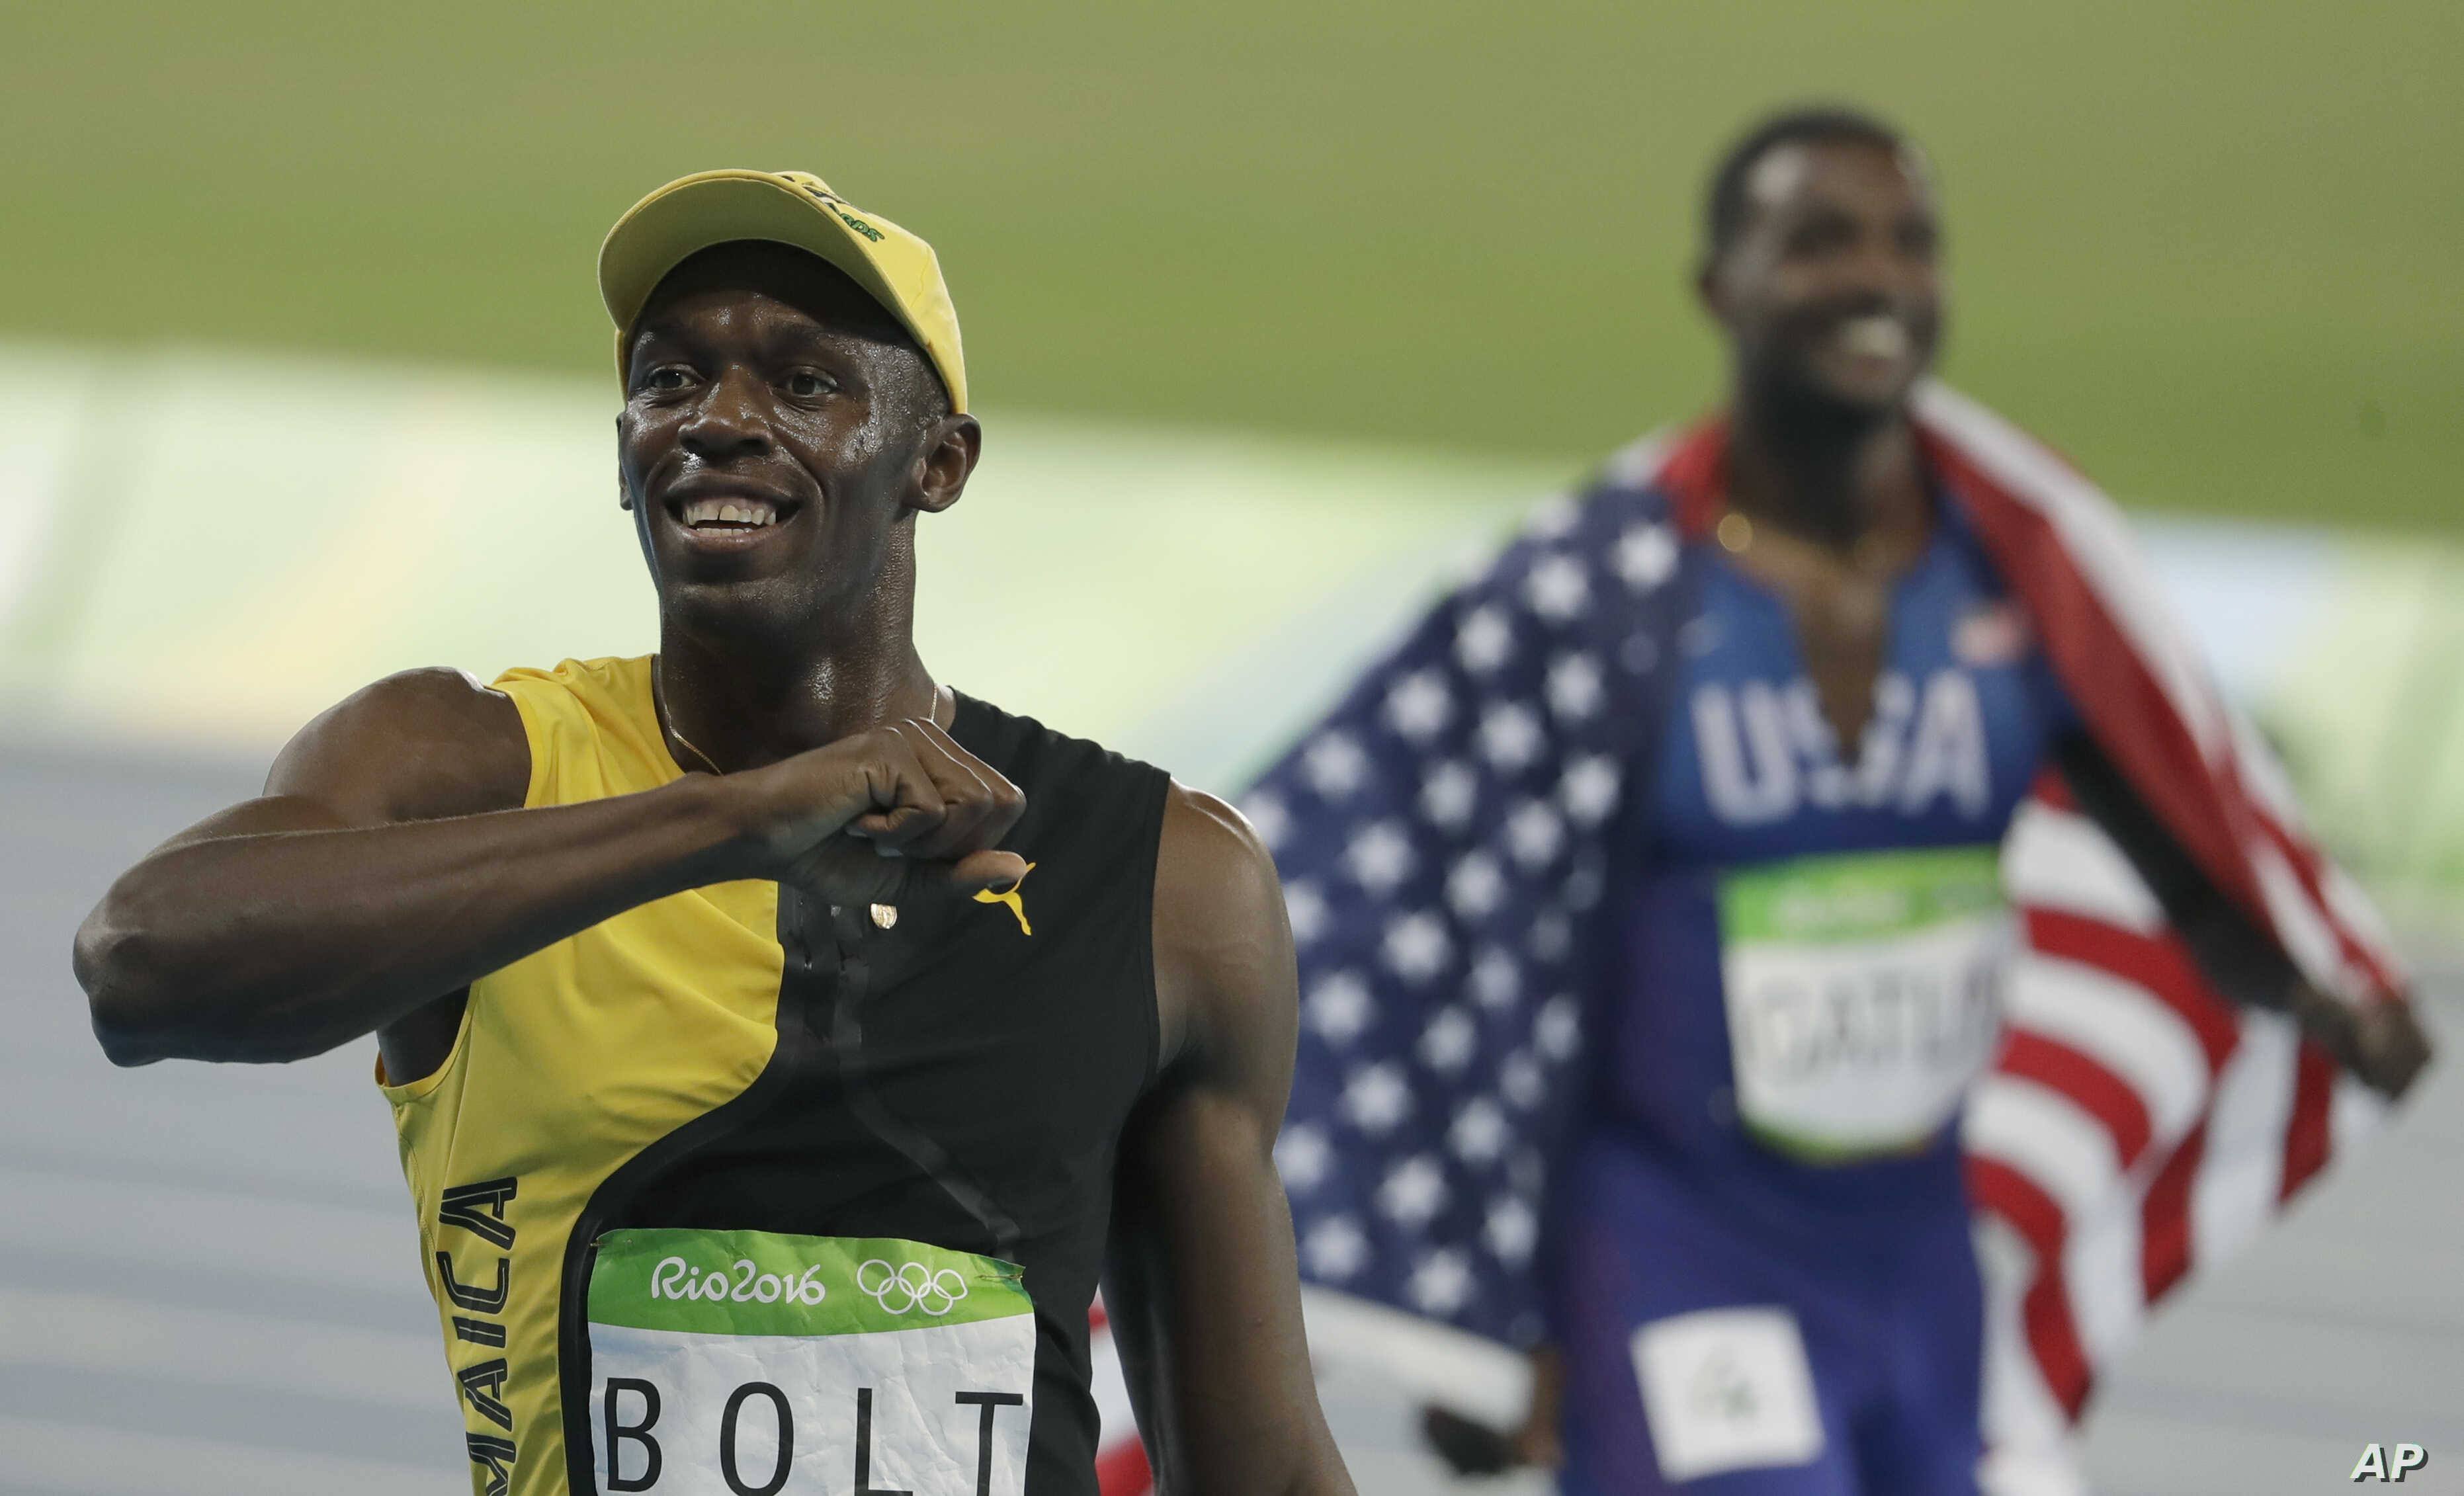 Jamaica's Usain Bolt celebrates winning the men's 100-meter final during the athletics competitions of the 2016 Summer Olympics at the Olympic stadium in Rio de Janeiro, Brazil, Aug. 14, 2016.